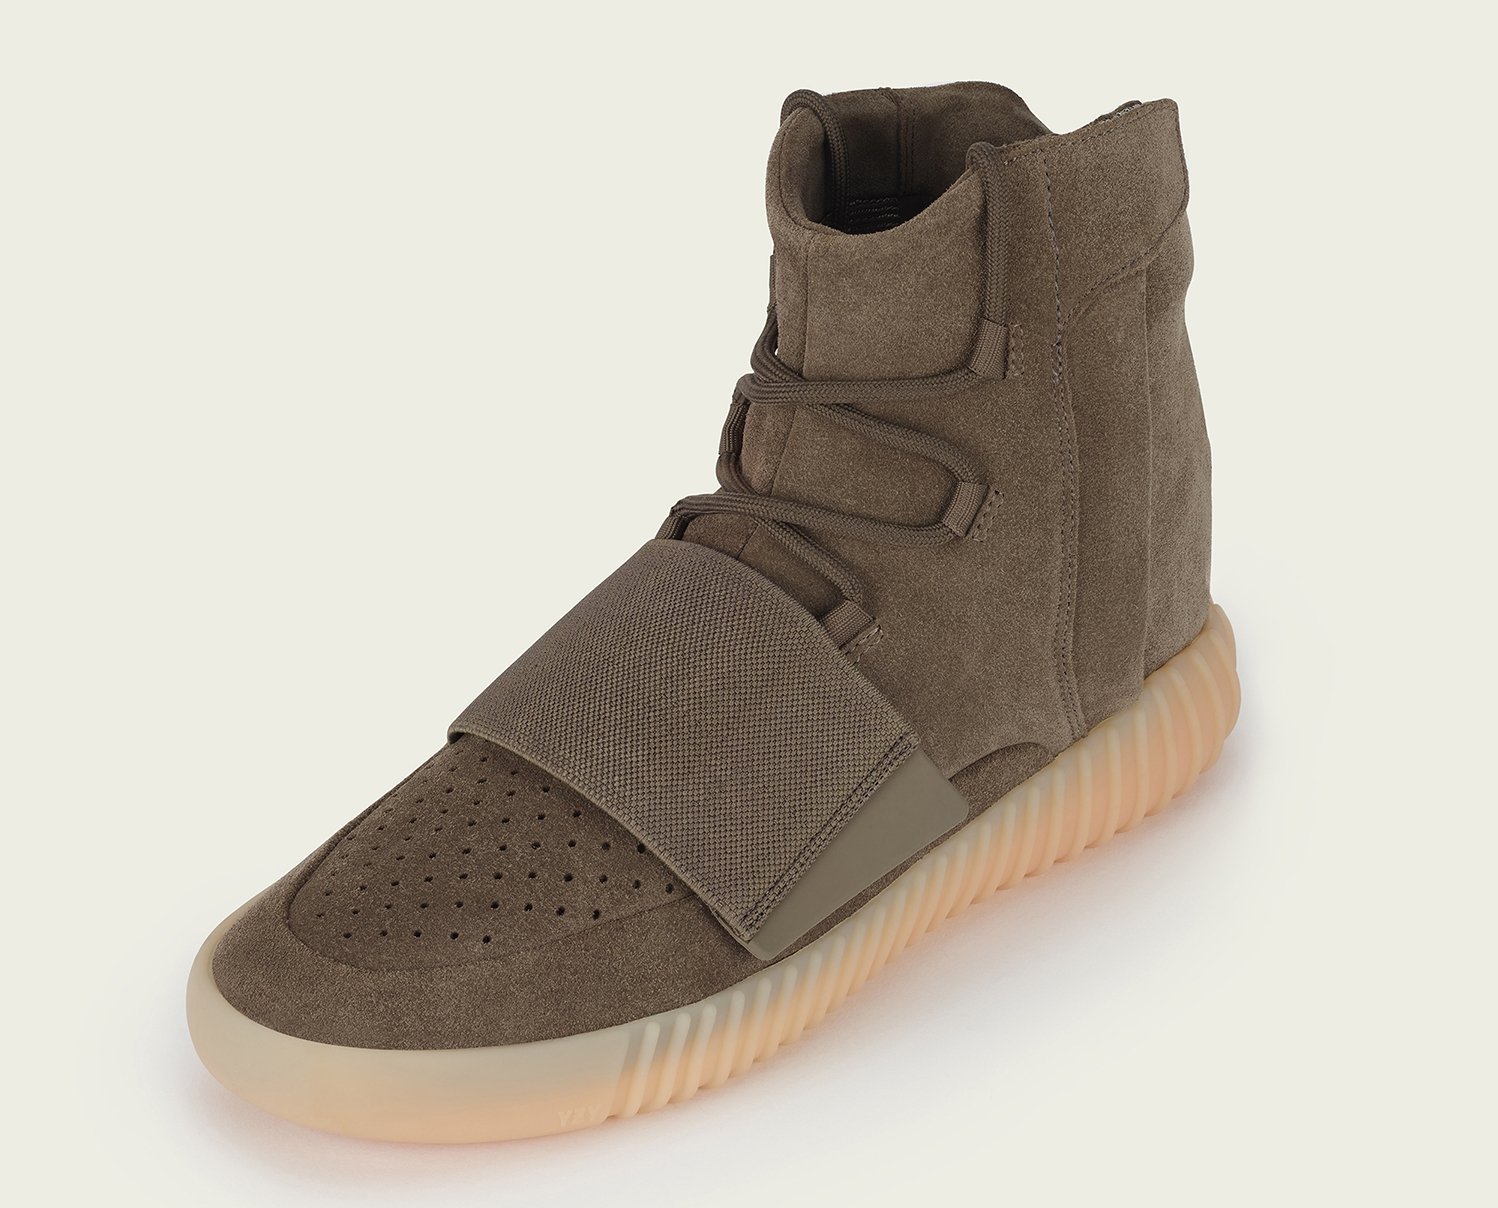 Adidas Yeezy 750 Boost Chocolate Release Date | Sole Collector